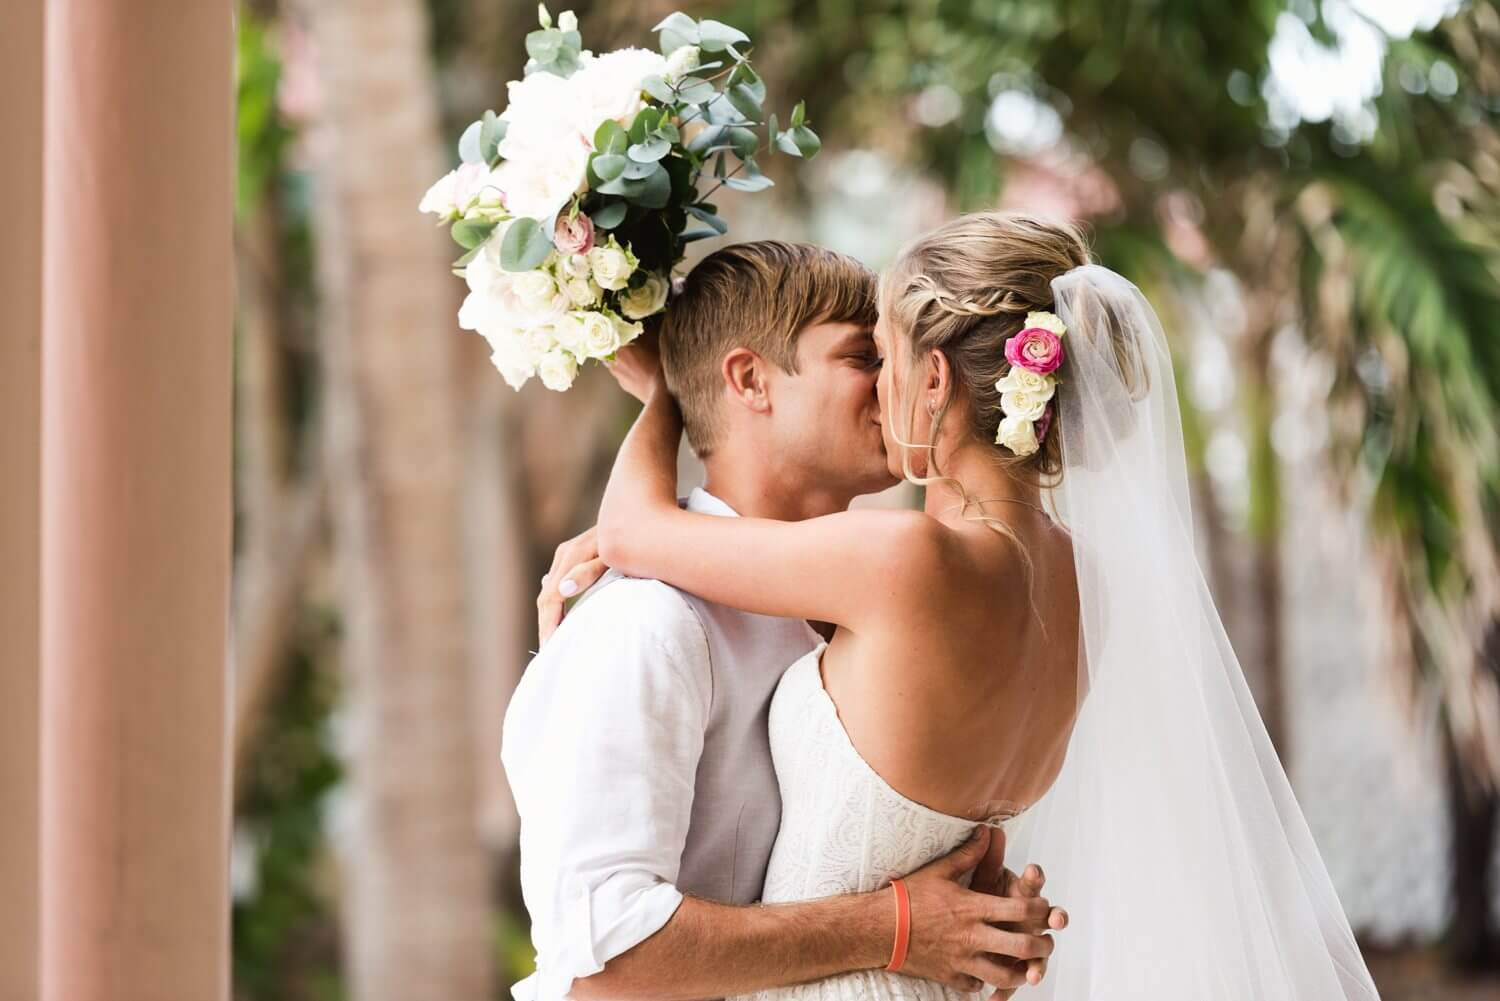 Freas Photography Southernmost House Wedding 49 - Boho Styled Key West Wedding at the Southernmost House in Key West, Florida